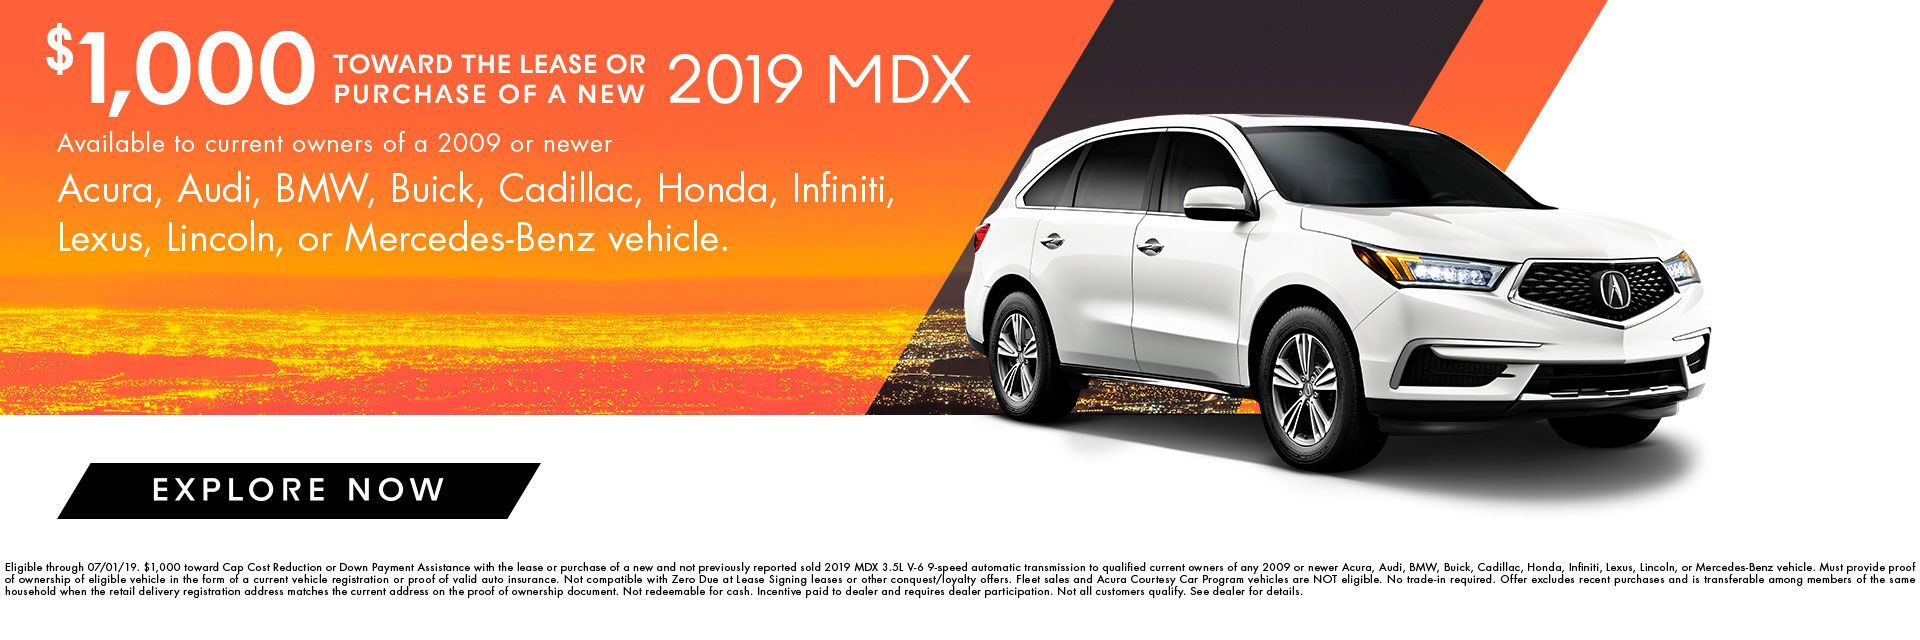 2019 MDX Incentives at Karen Radley Acura